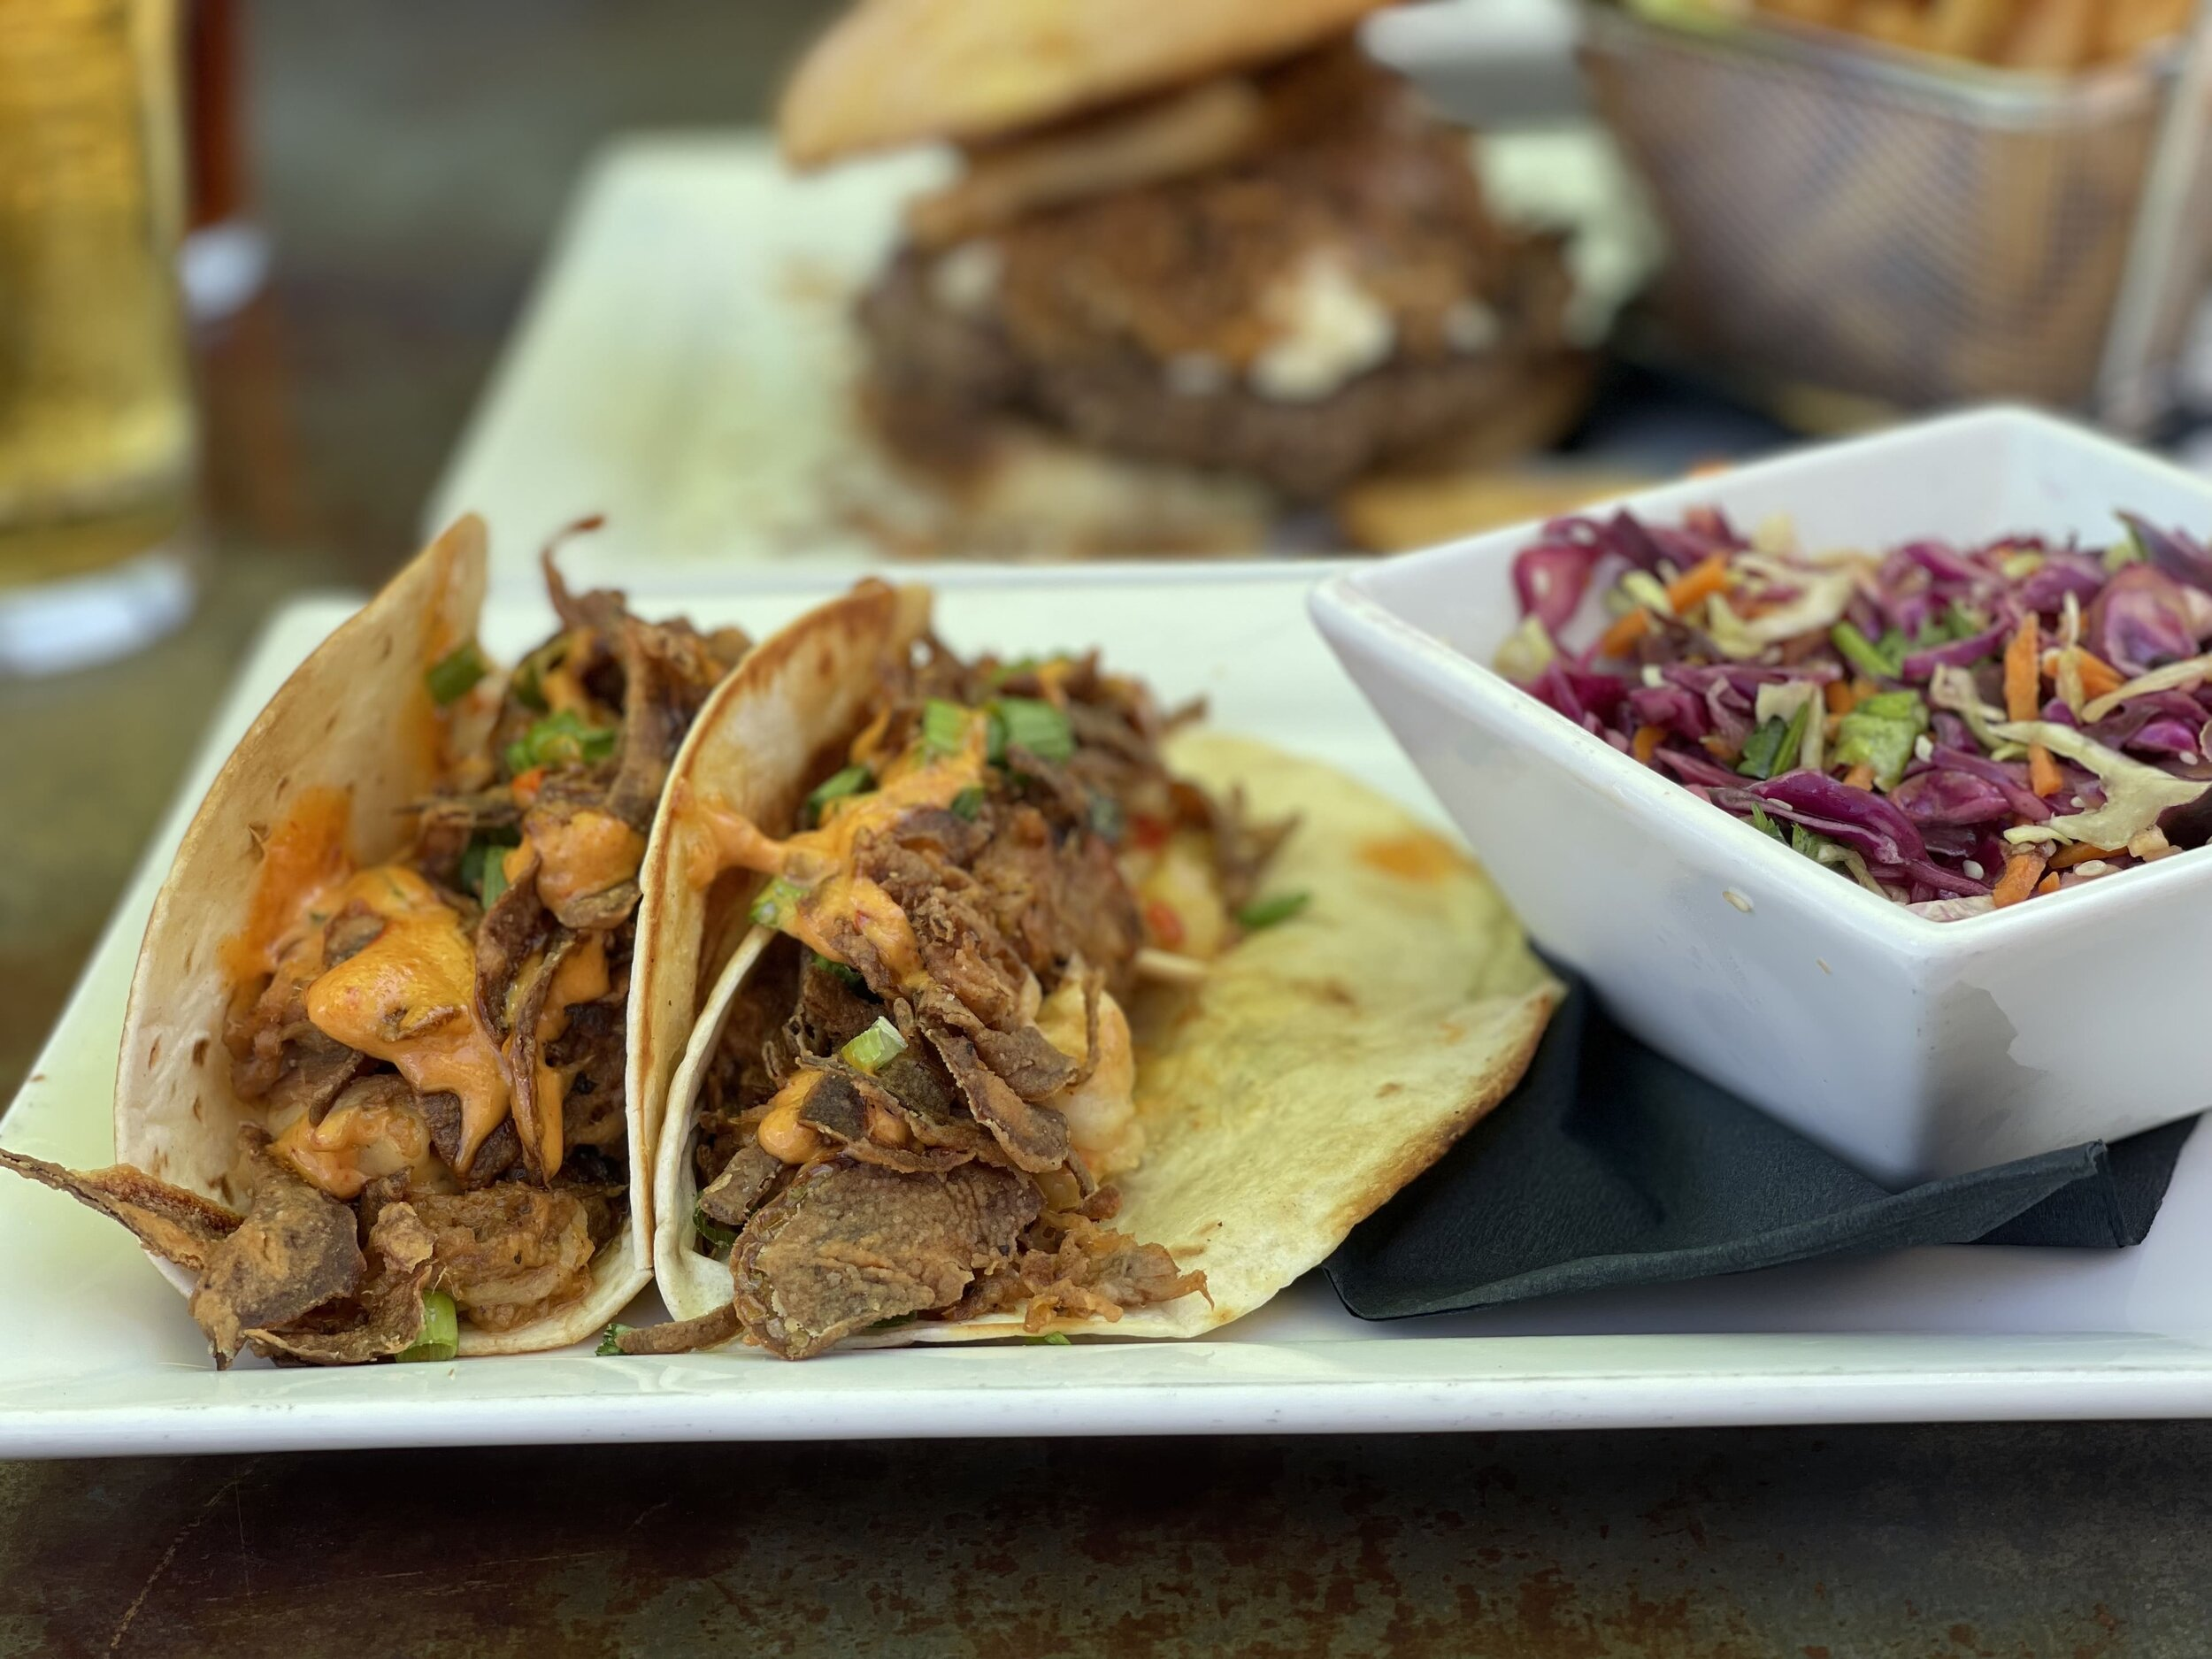 Piggy Tacos at our pick for best casual food in New Braunfels